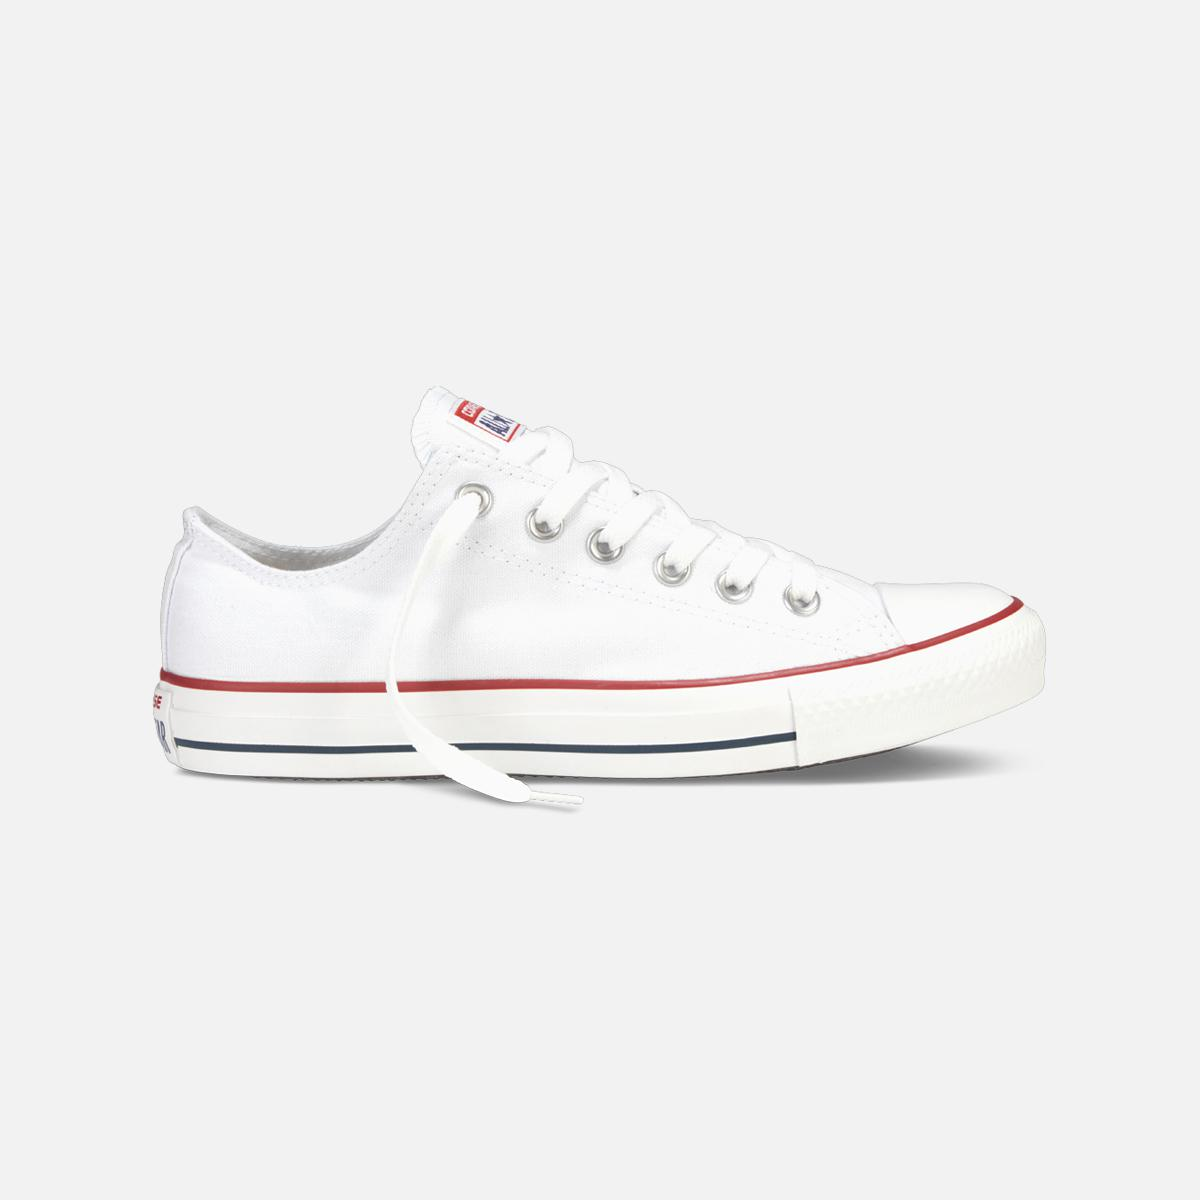 b313df8a5a3 Lyst - Converse Chuck Taylor All Star Low Top-optic White in White ...